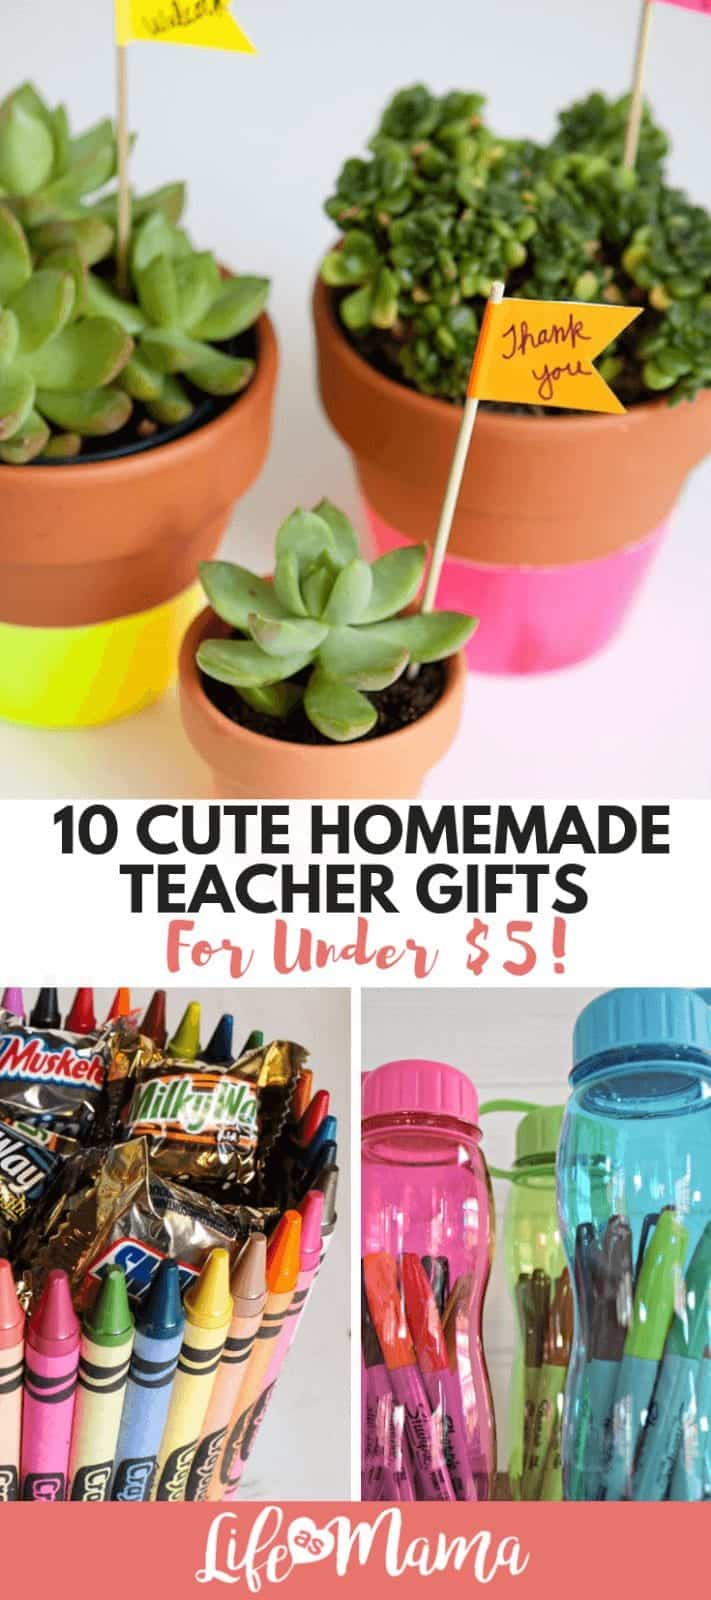 10 Cute Homemade Teacher Gifts For Under $5!